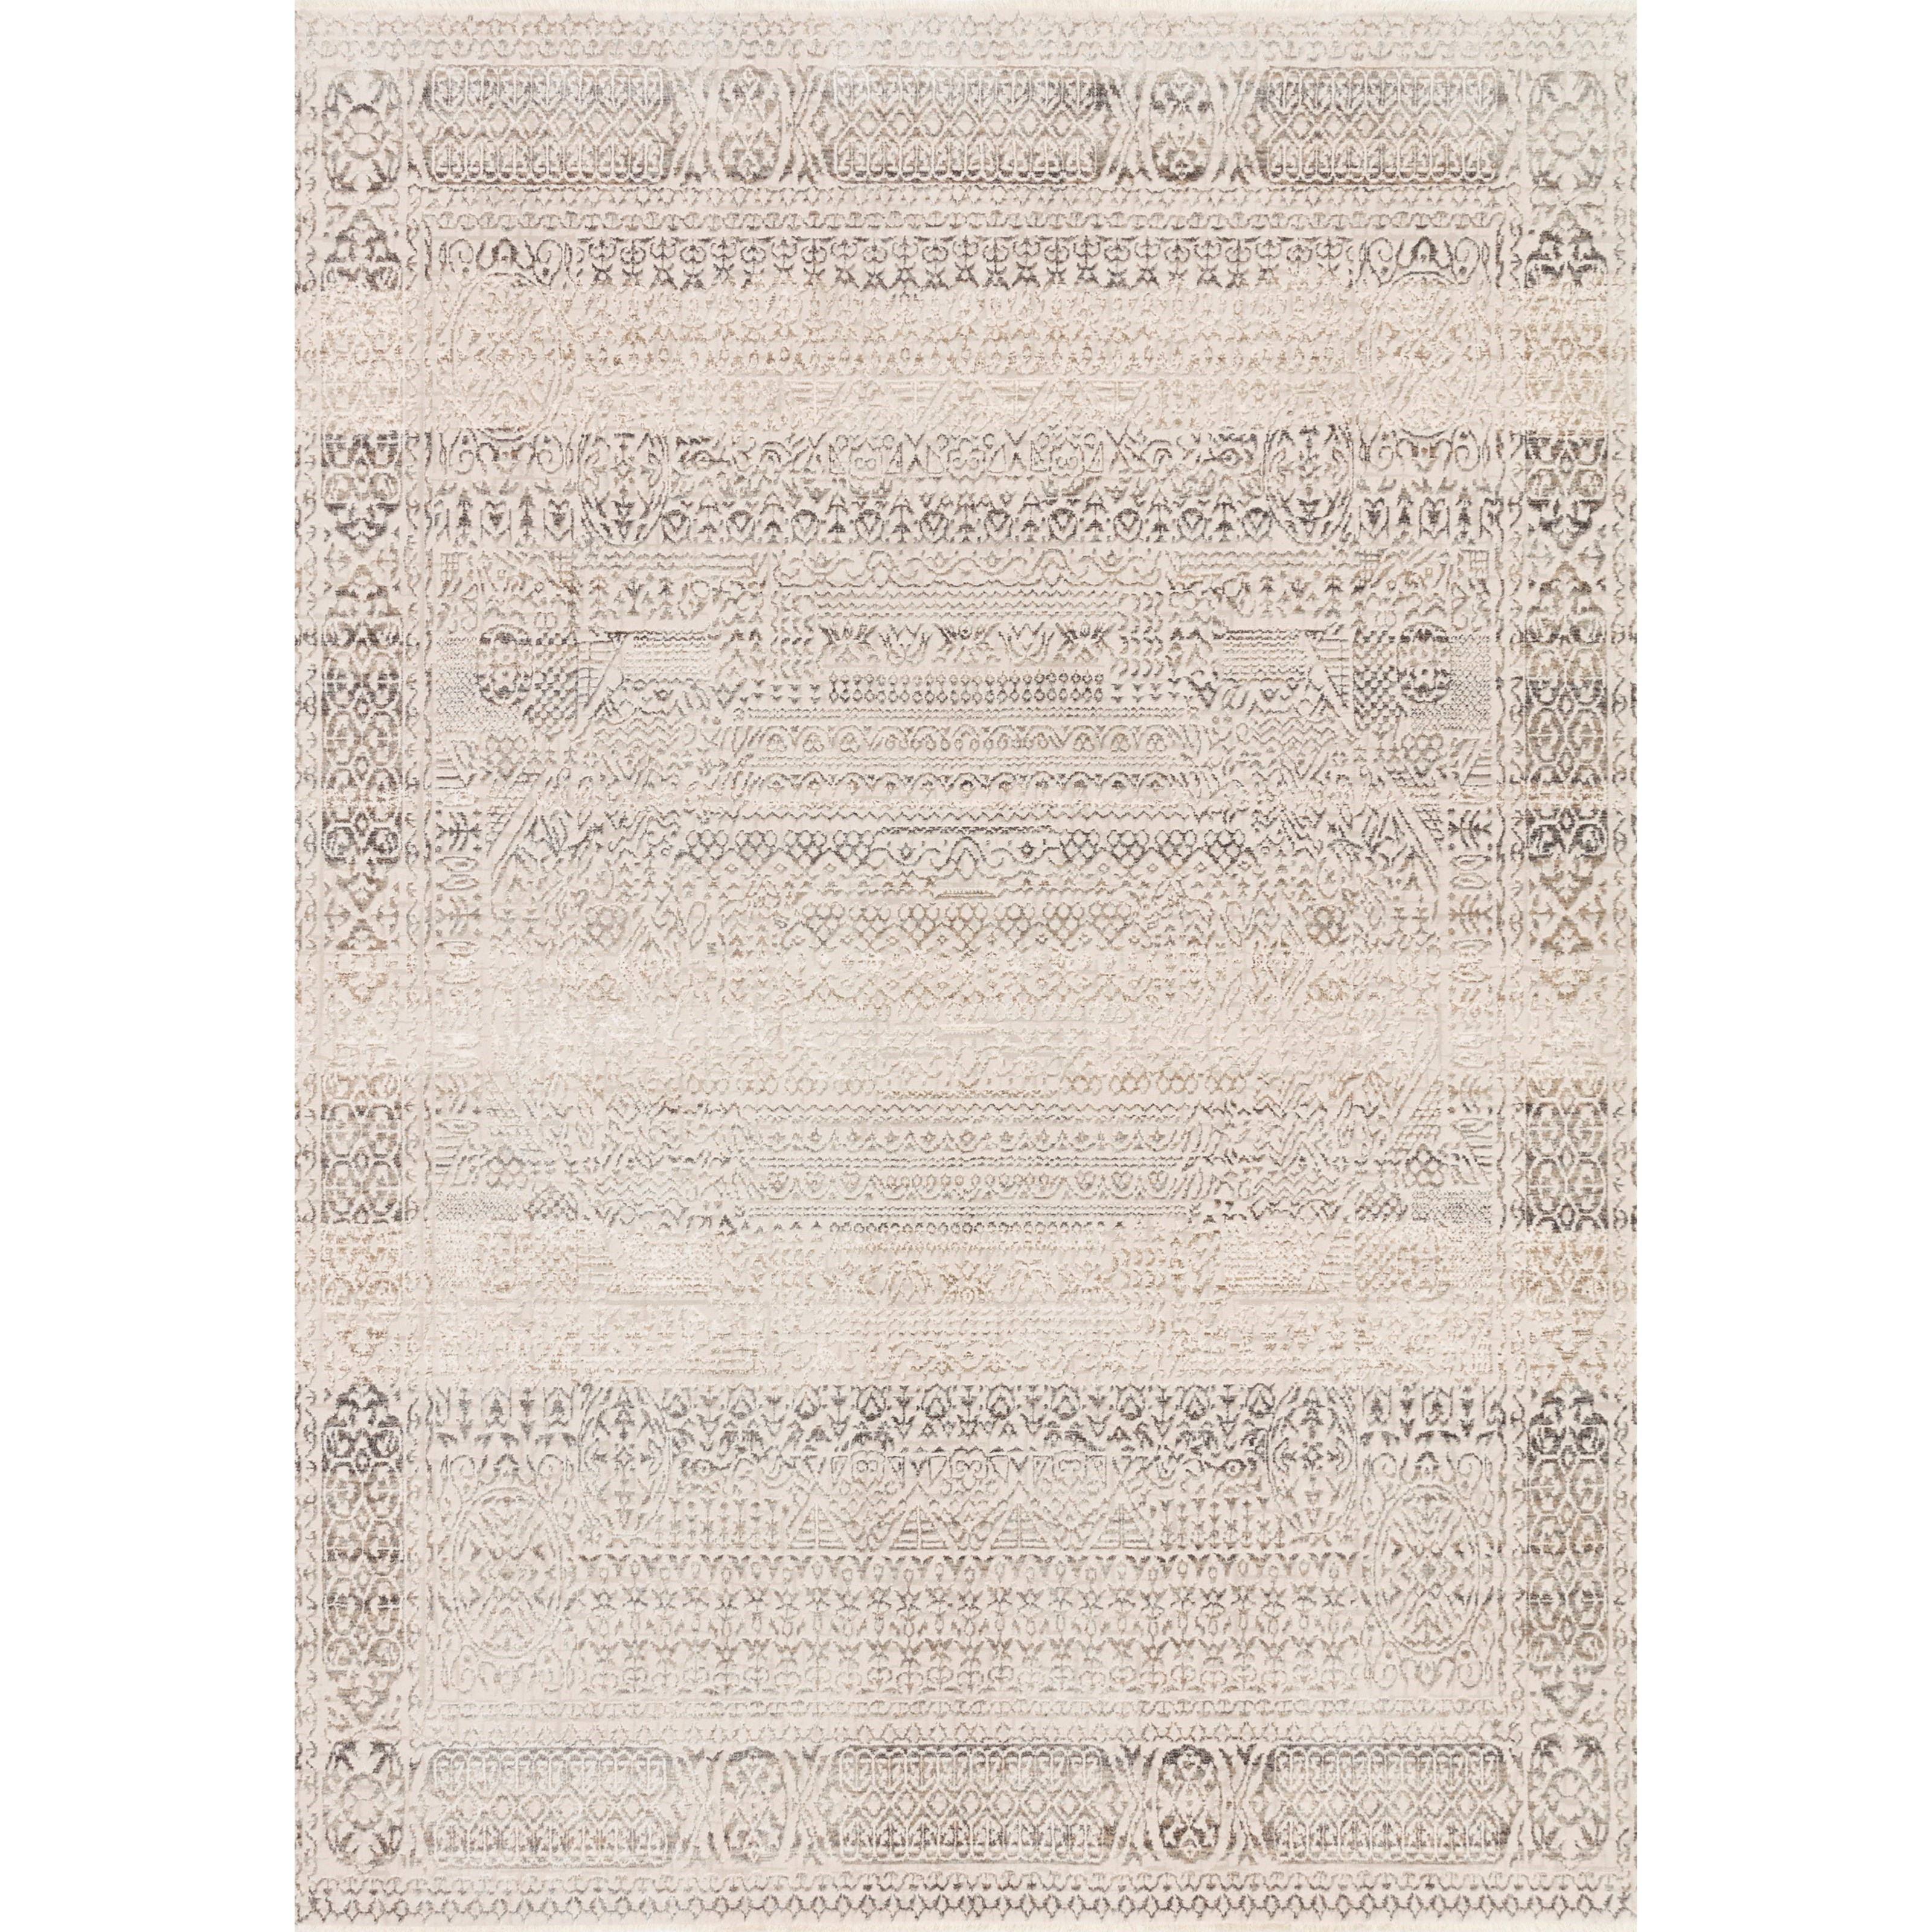 """Homage 2'0"""" x 3'4"""" Ivory / Silver Rug by Loloi Rugs at Virginia Furniture Market"""